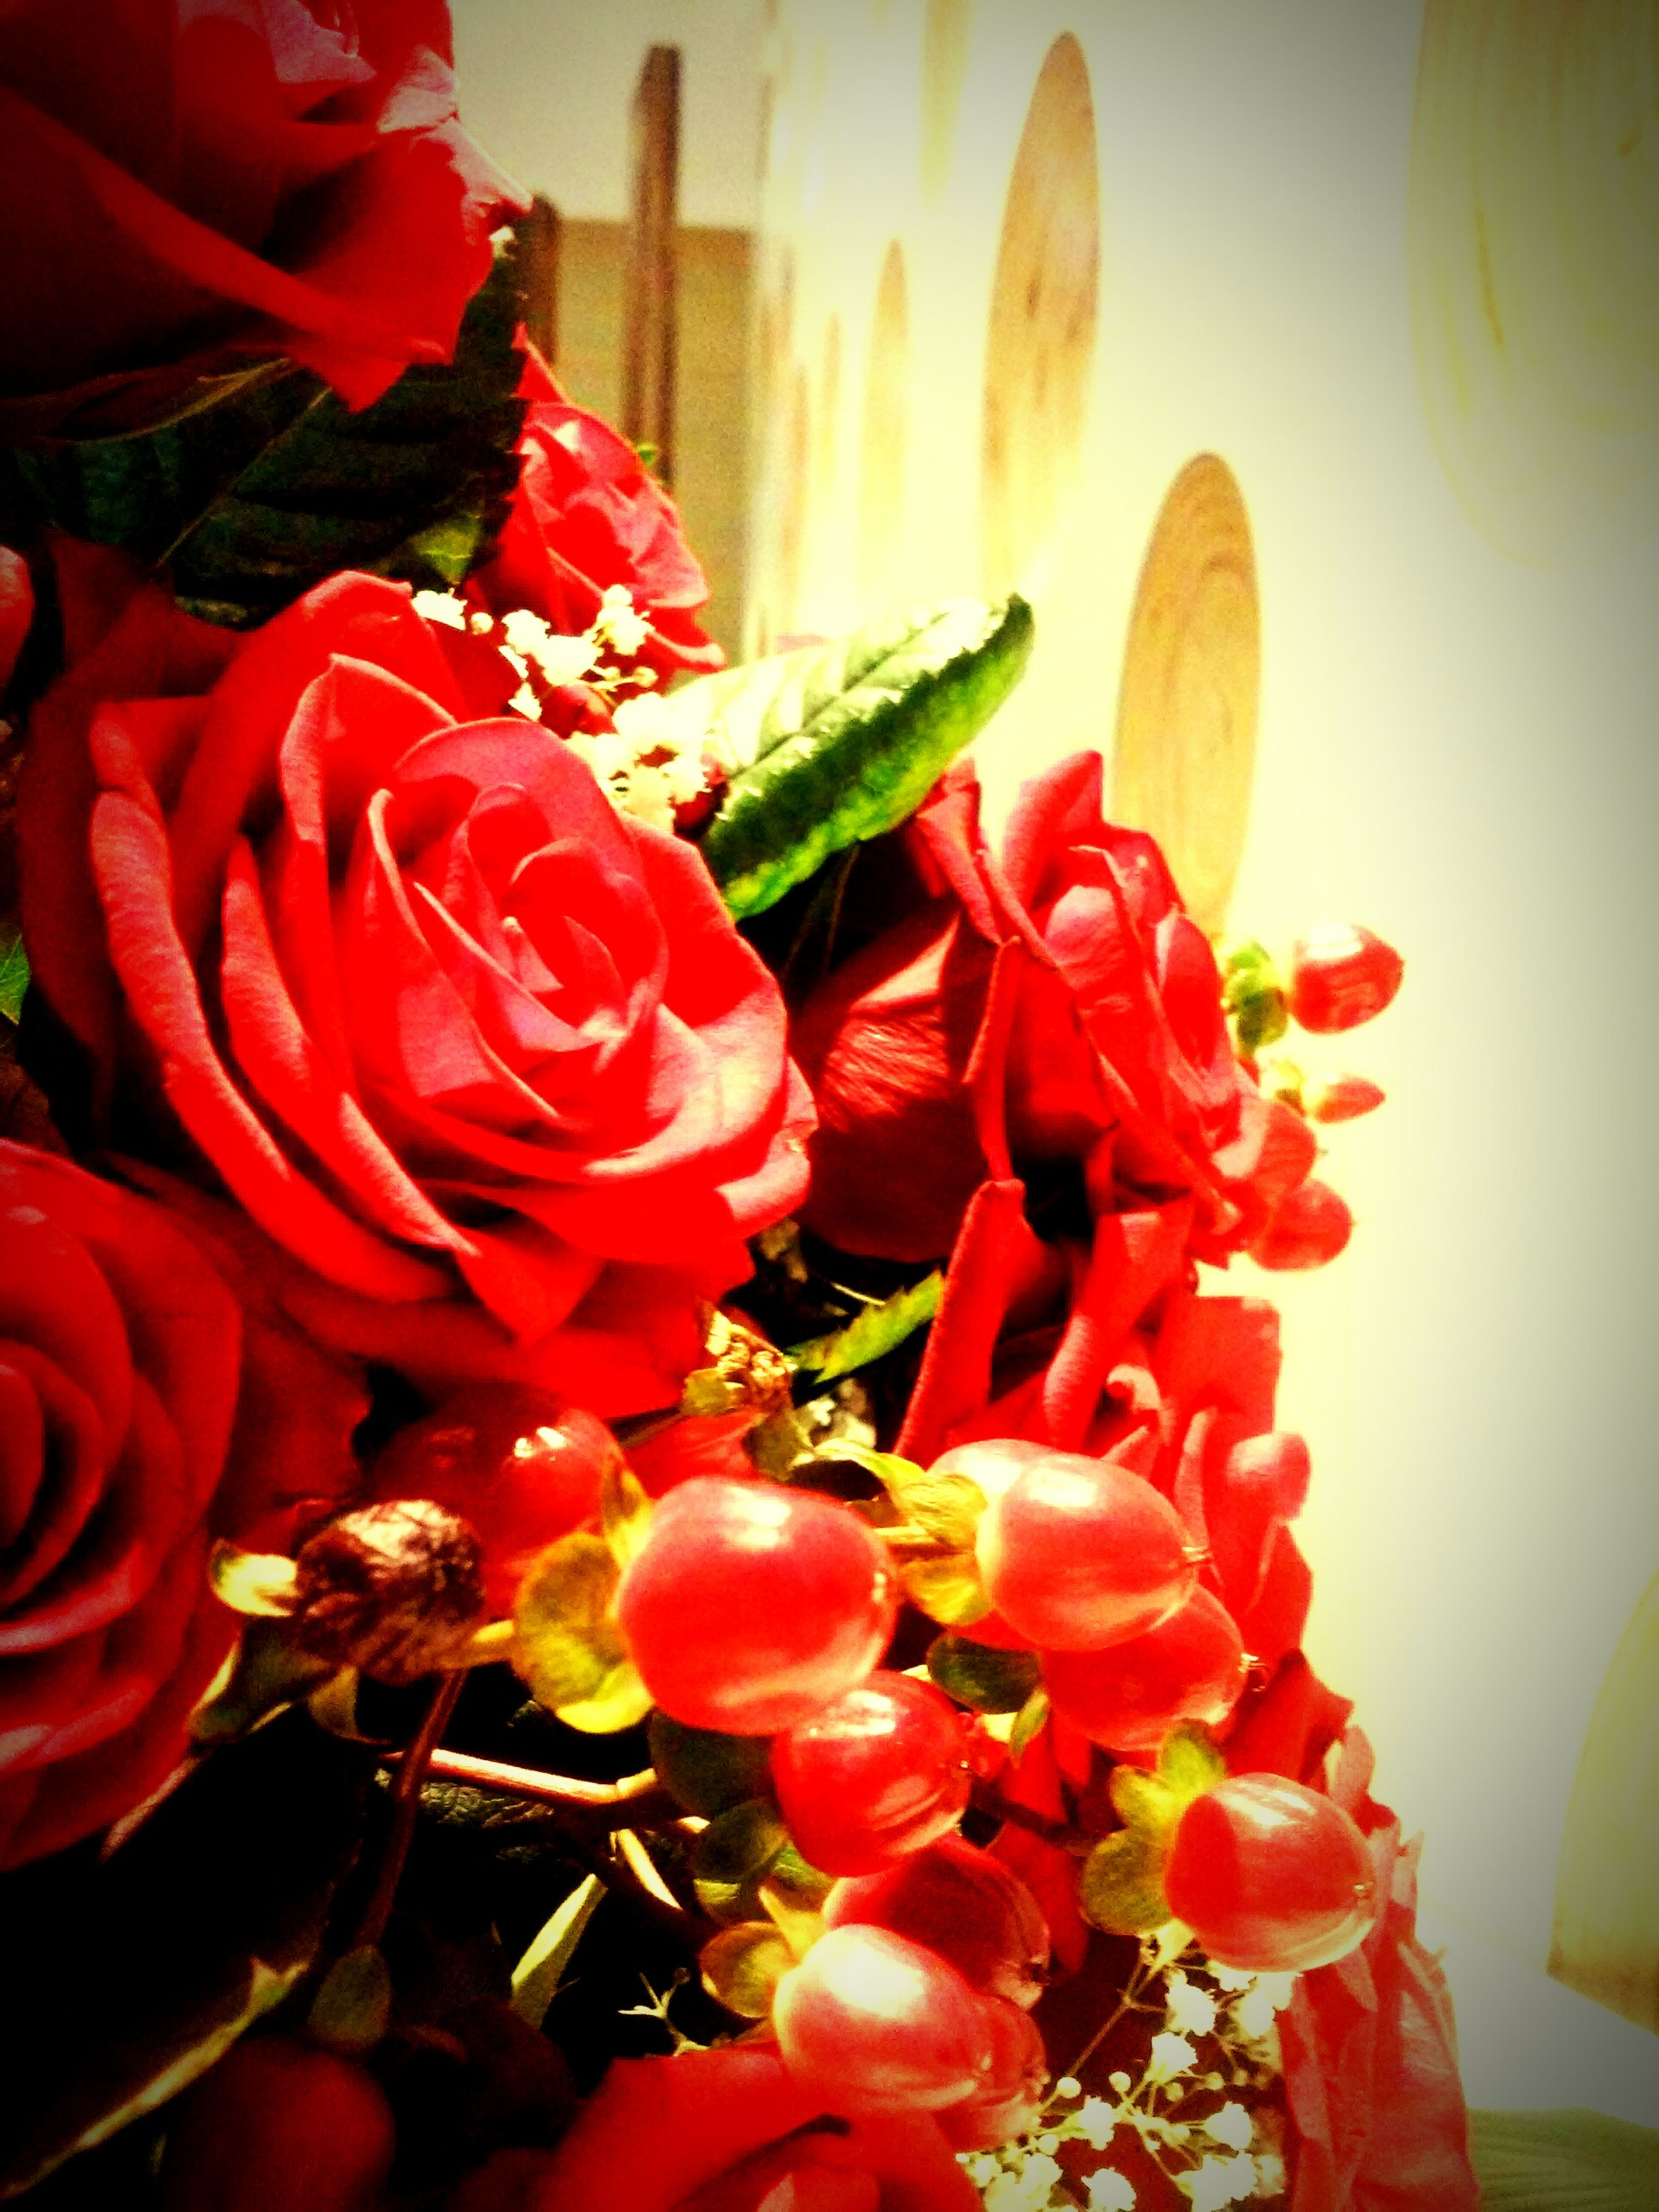 flower, petal, freshness, flower head, fragility, red, indoors, beauty in nature, close-up, growth, plant, blooming, nature, focus on foreground, rose - flower, bouquet, tulip, vase, in bloom, stem